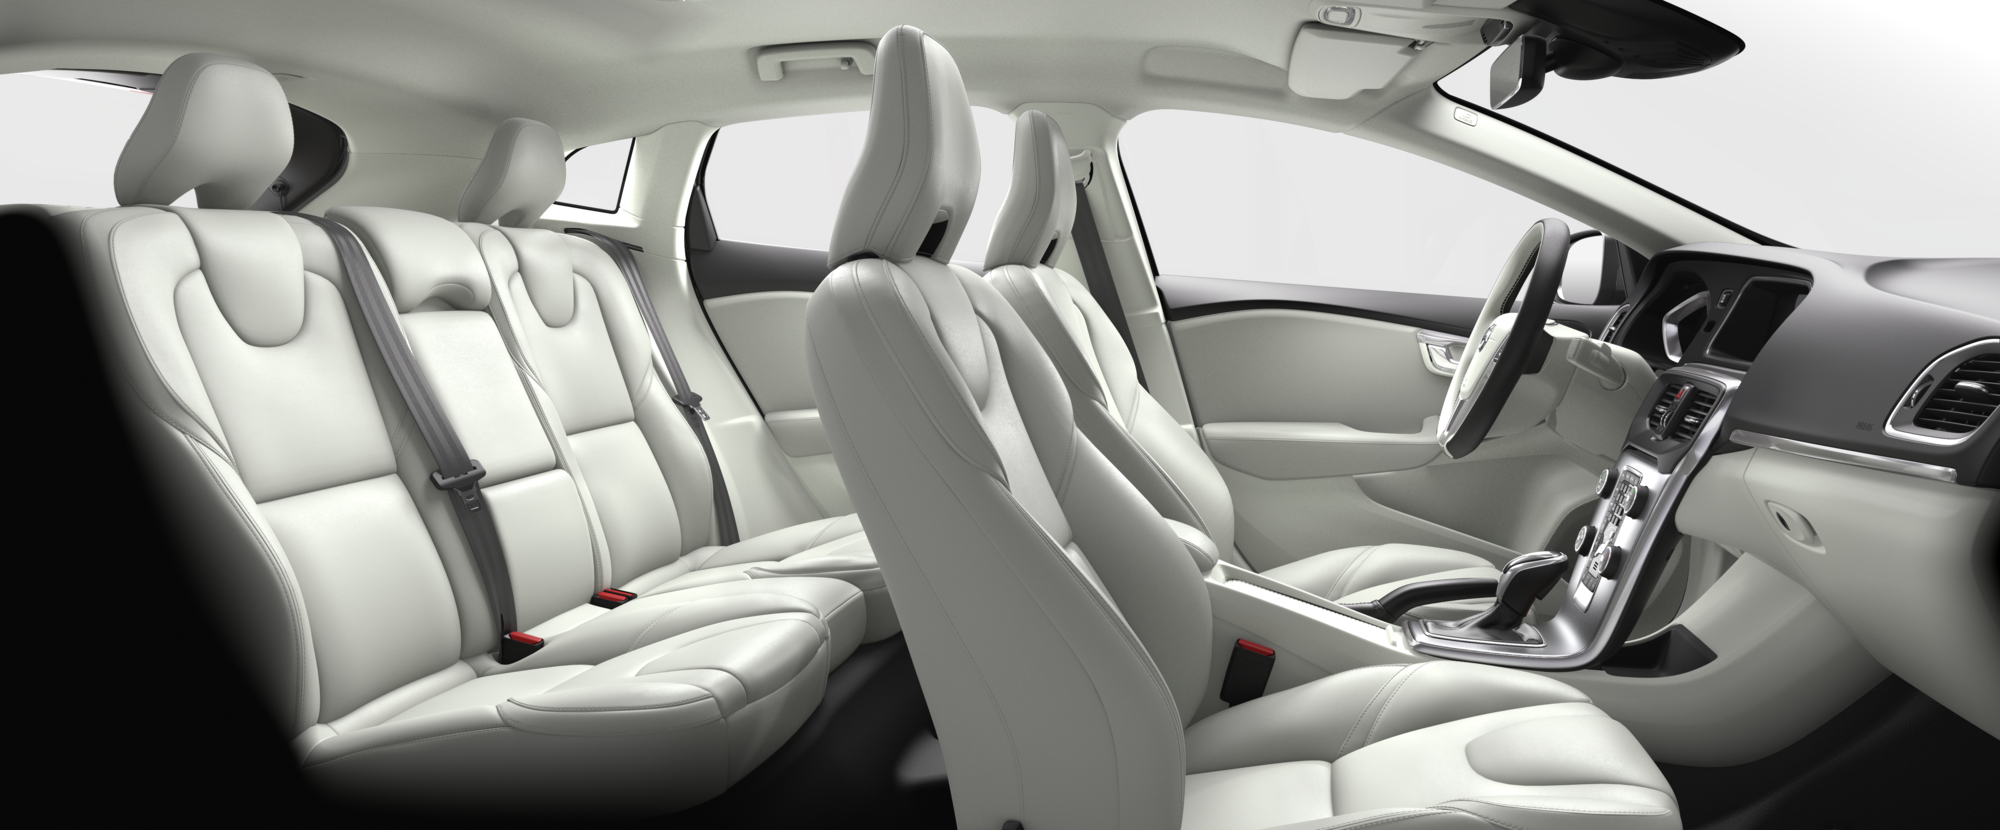 Interior shot of the Volvo V40 with Blond Leather Seats